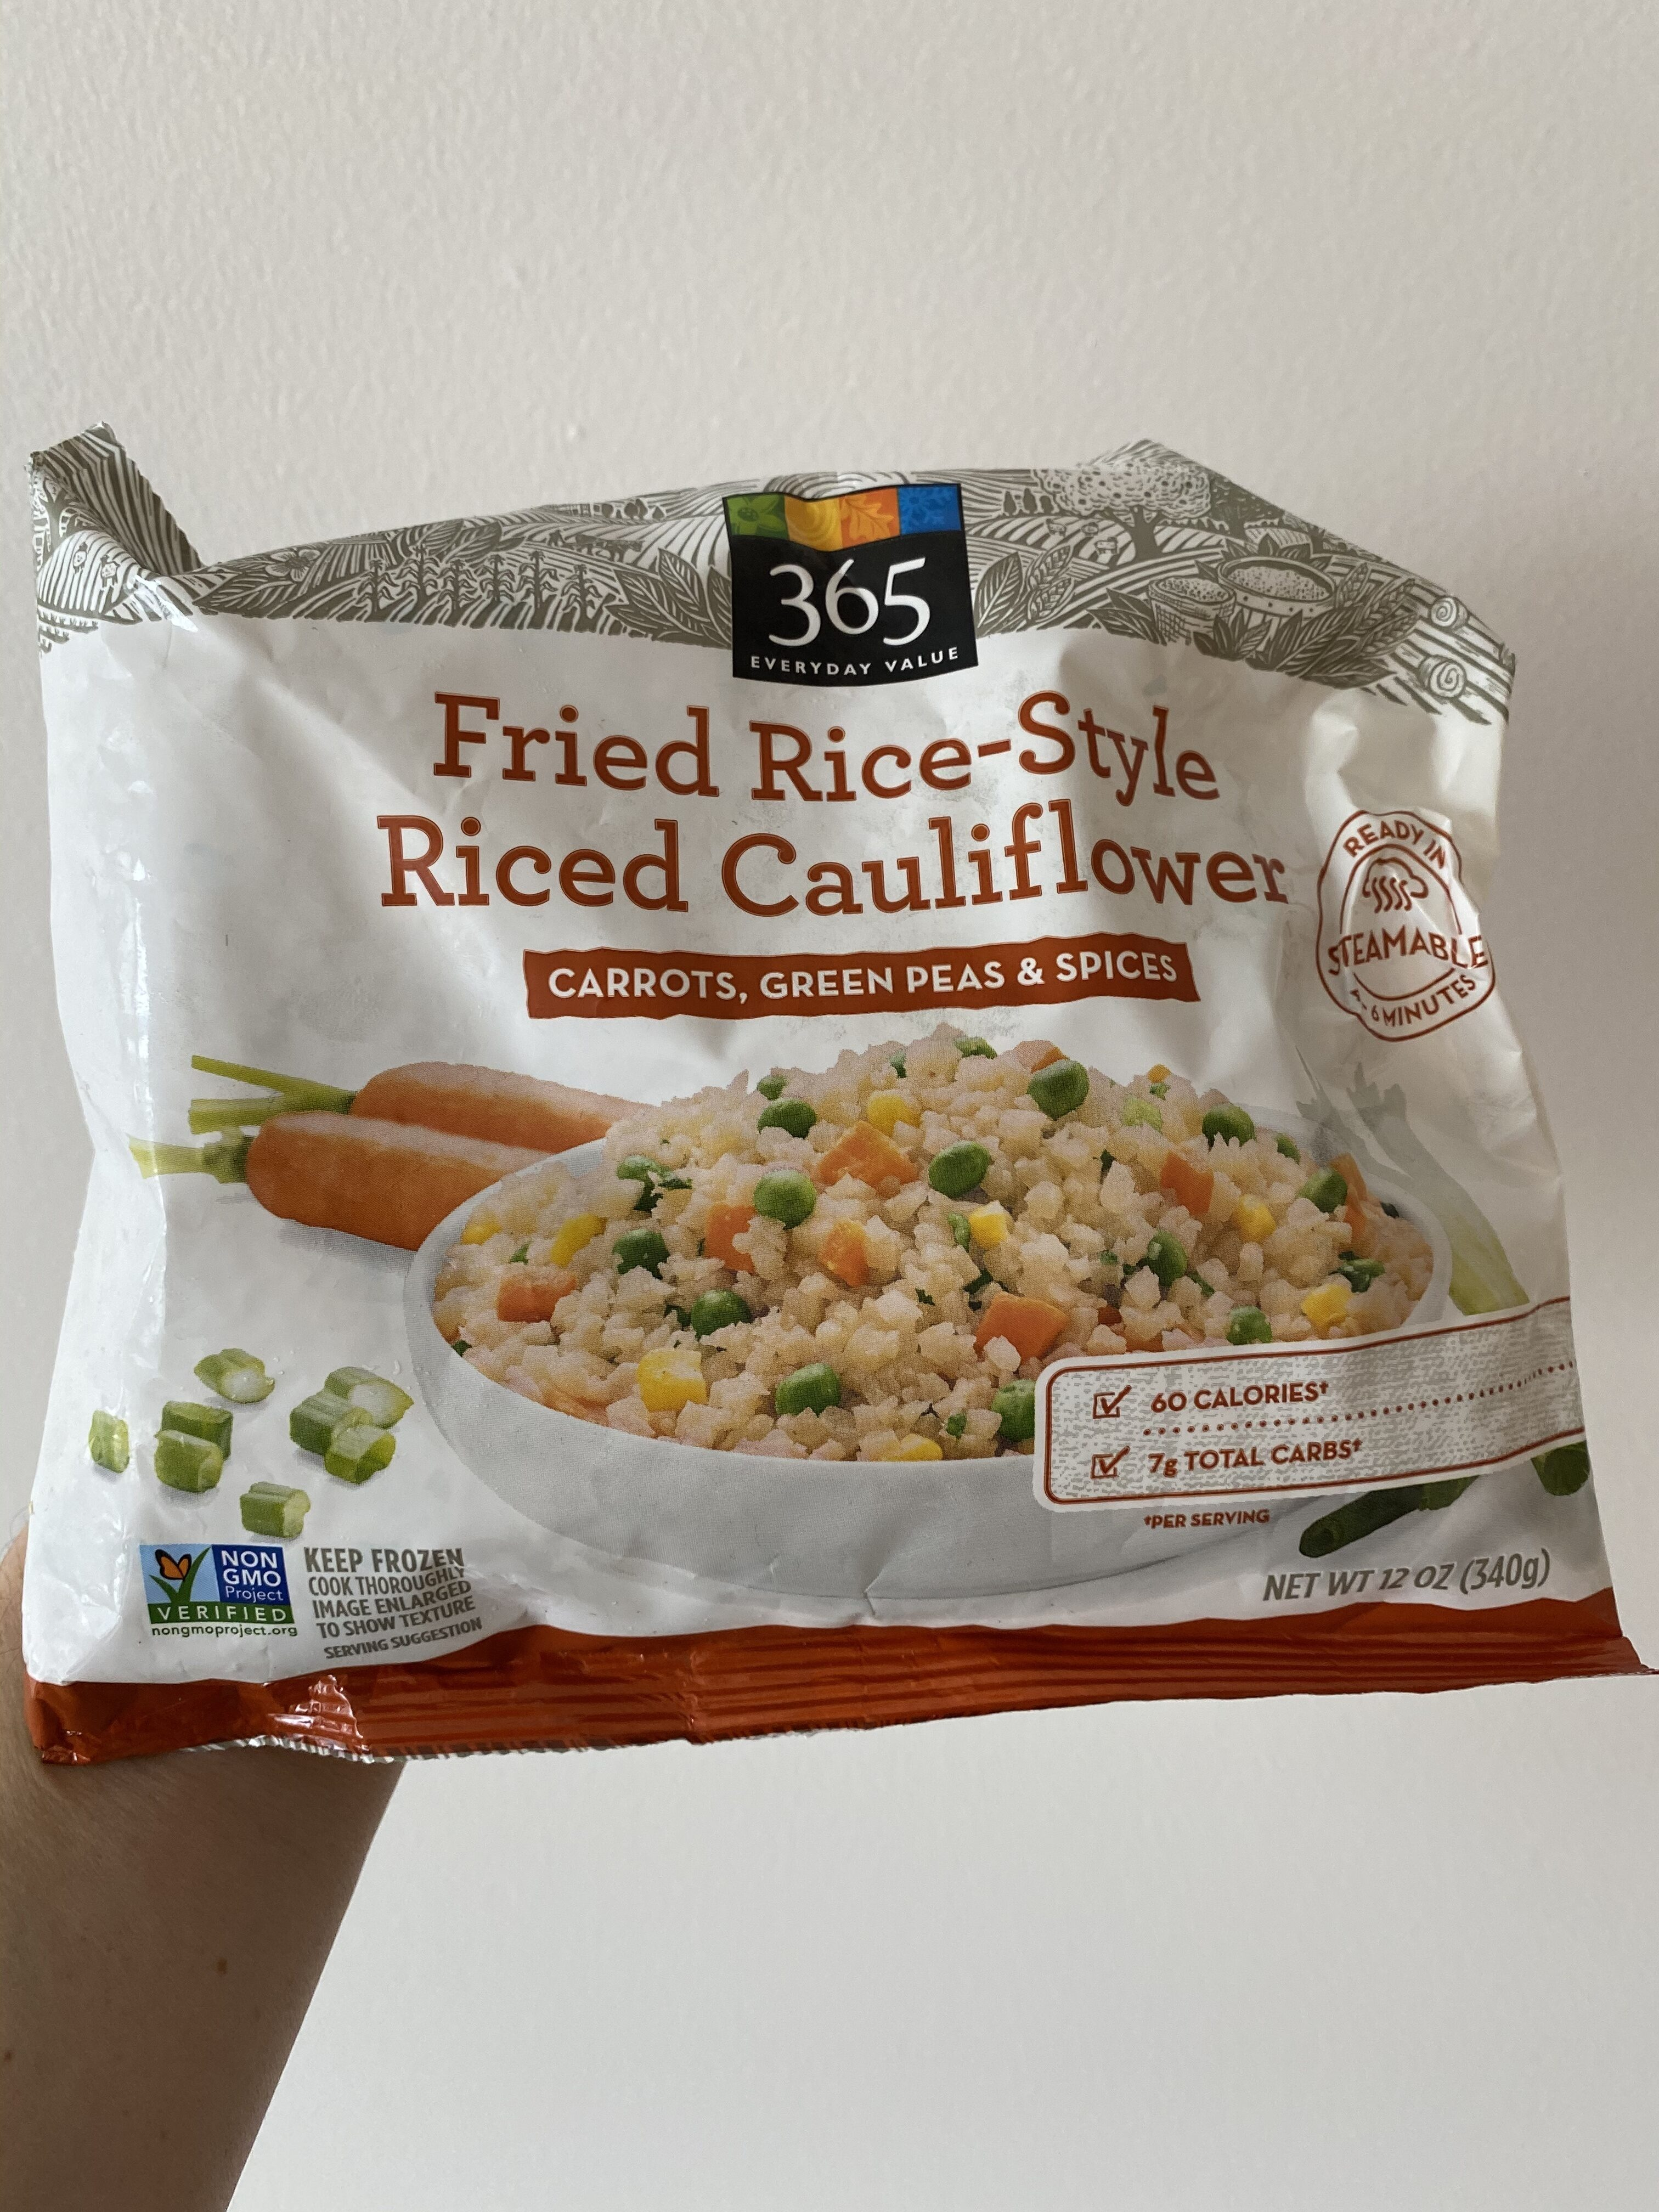 Fried Rice-Style Riced Cauliflower - Product - en